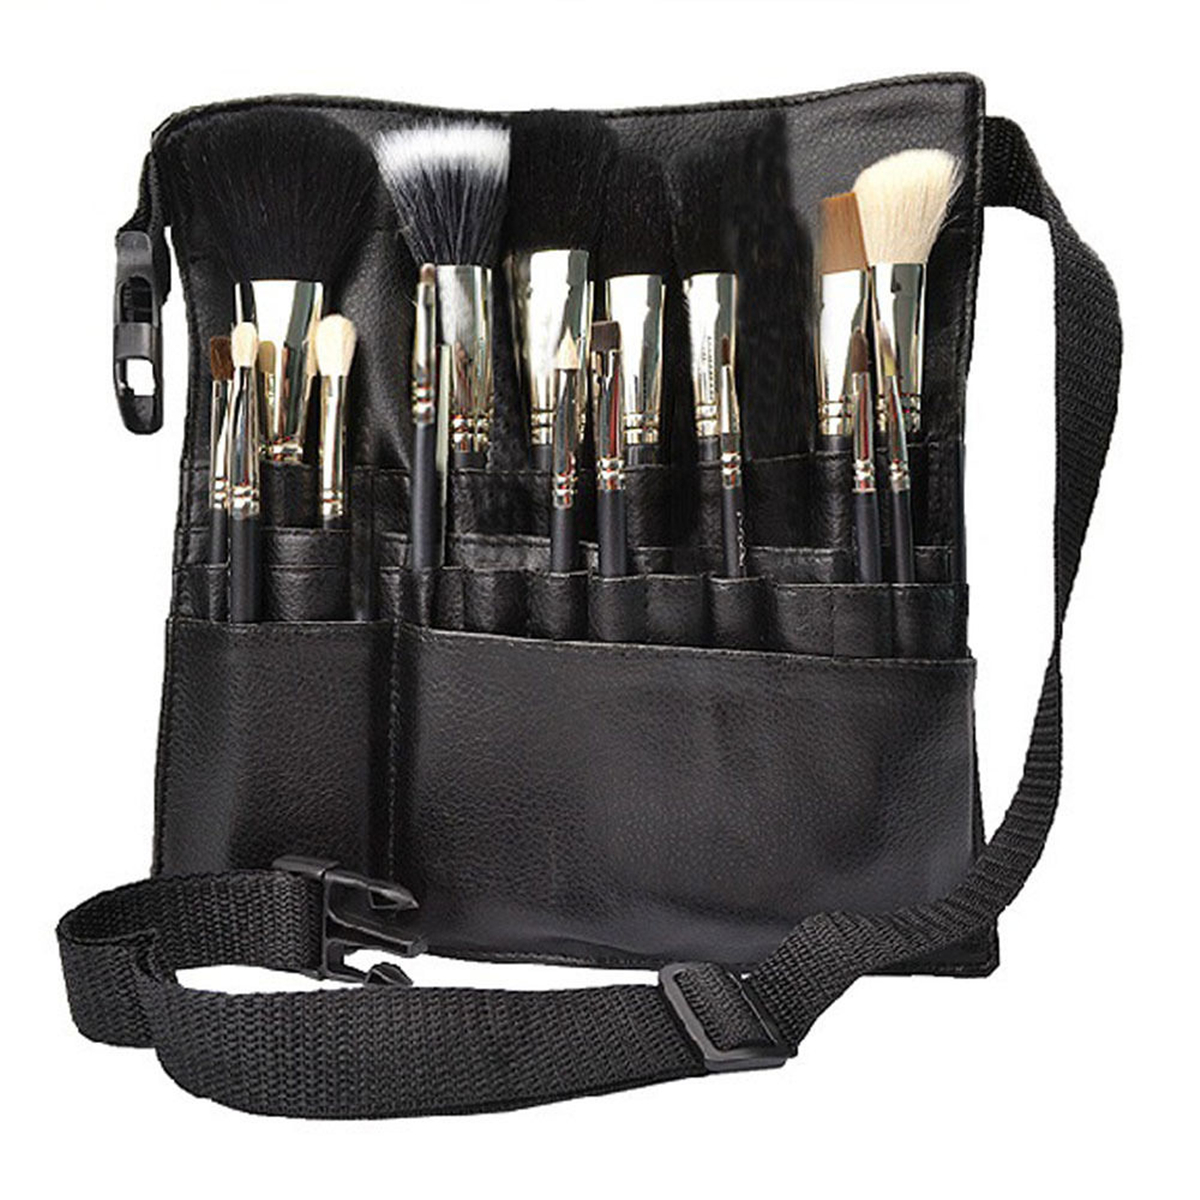 22 Pockets Professional Artist Makeup Brush Pouch Bag Strap Belt Holder Cosmetic Case